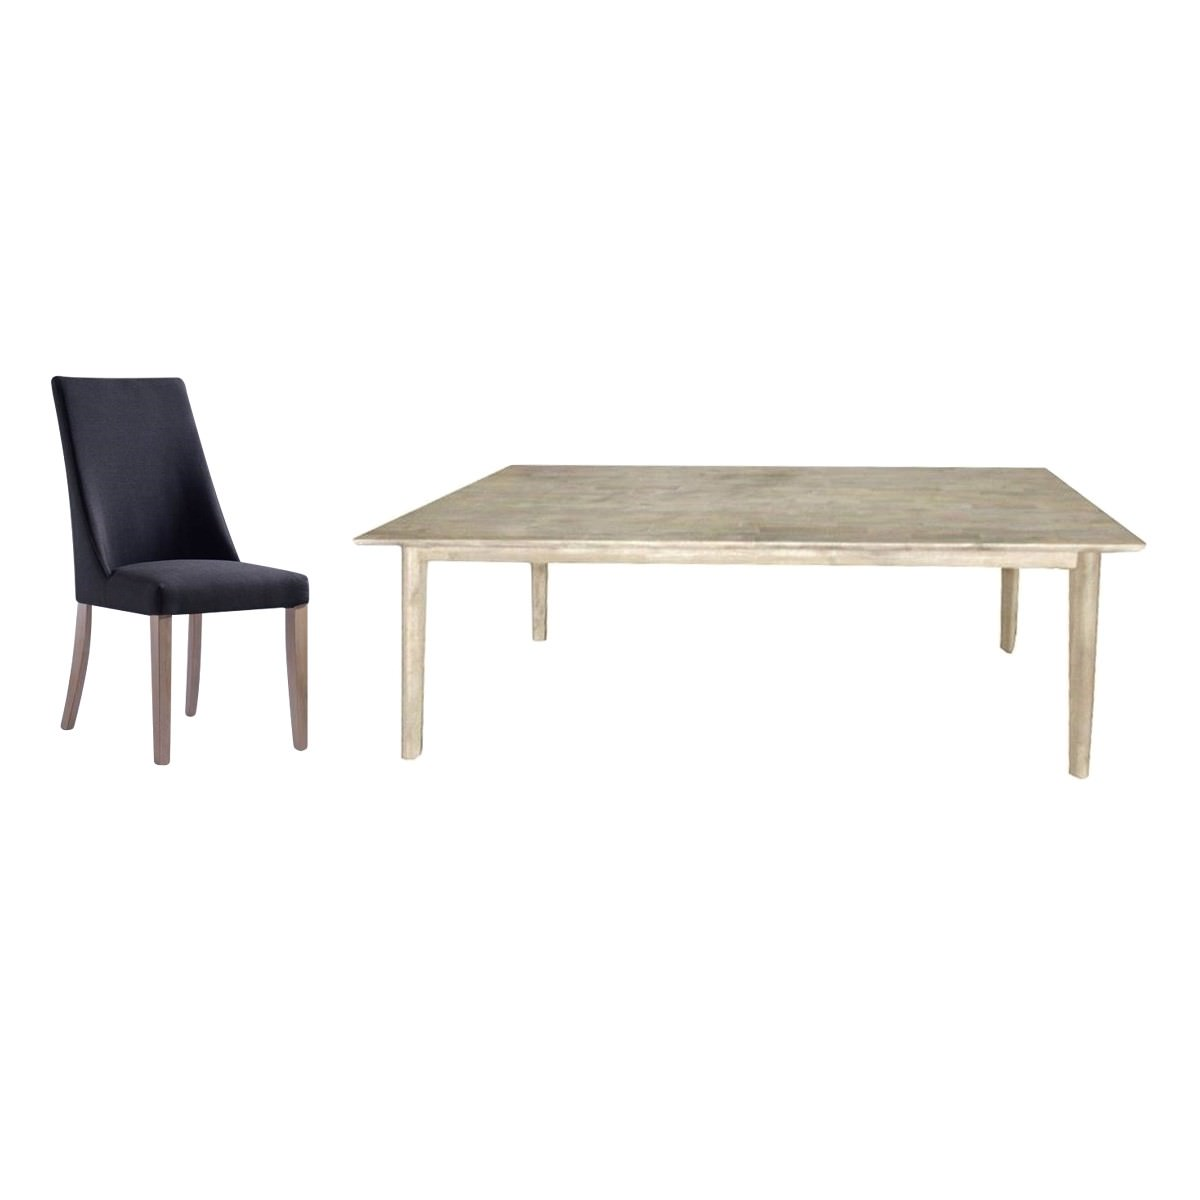 Clyde & Blandford 7 Piece Acacia Timber Dining Table Set, 180cm